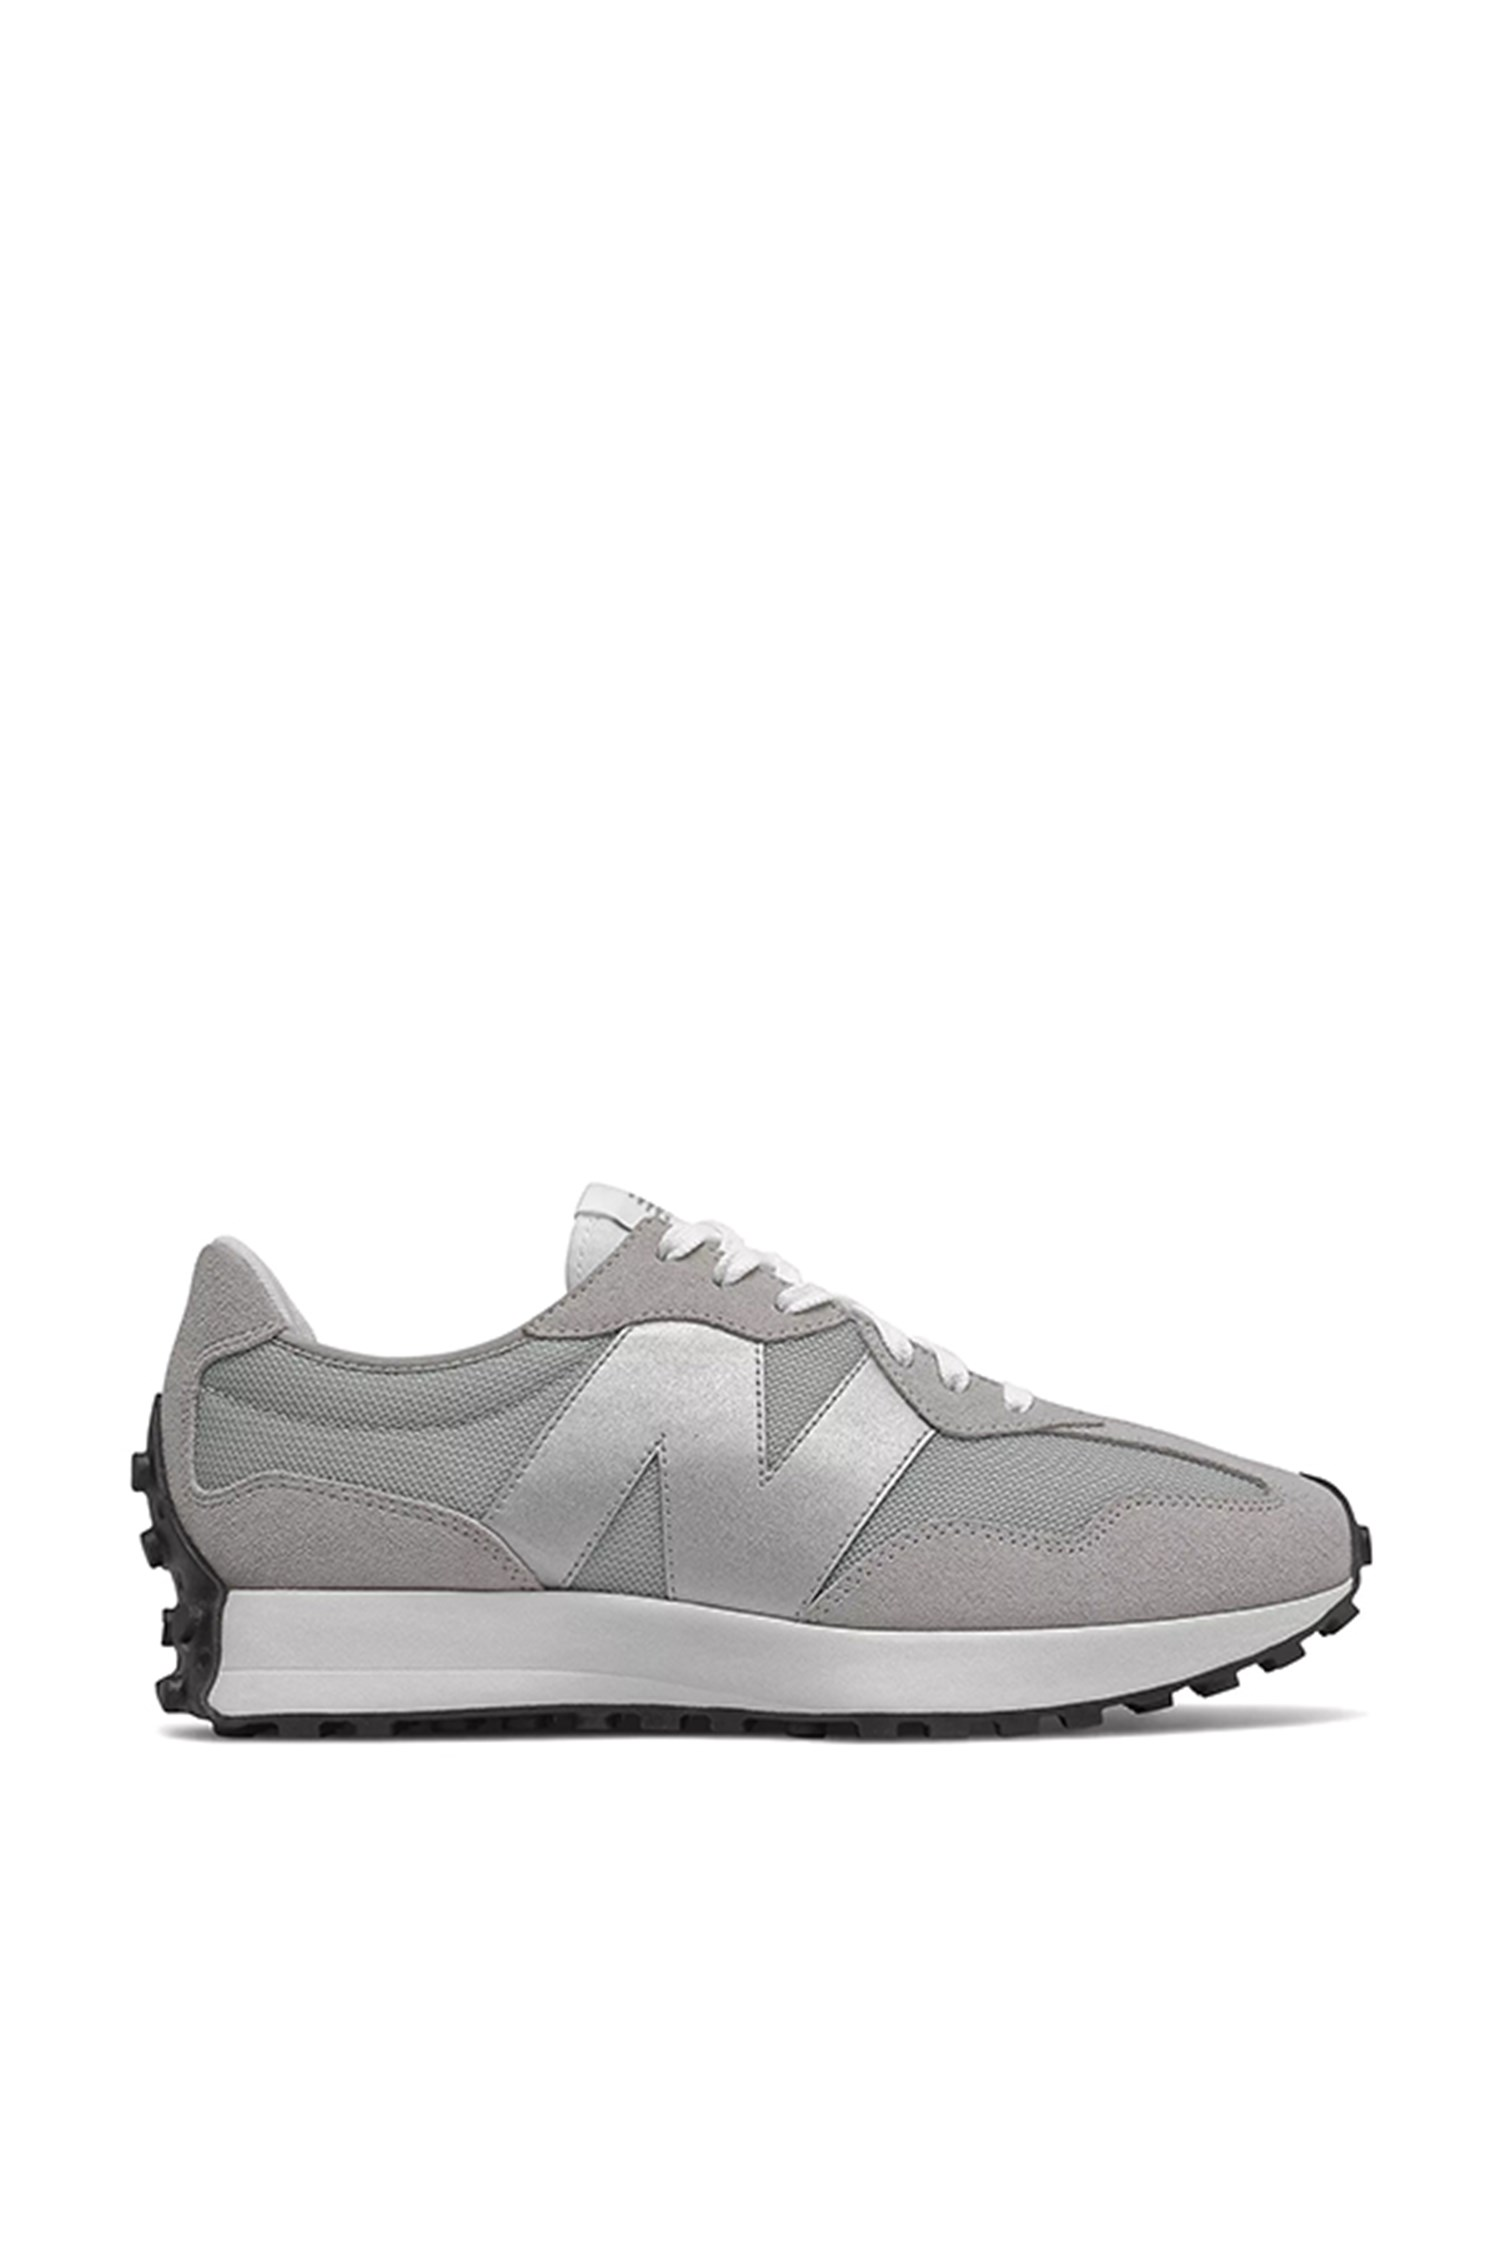 NEW BALANCE stores in Firenze | SHOPenauer